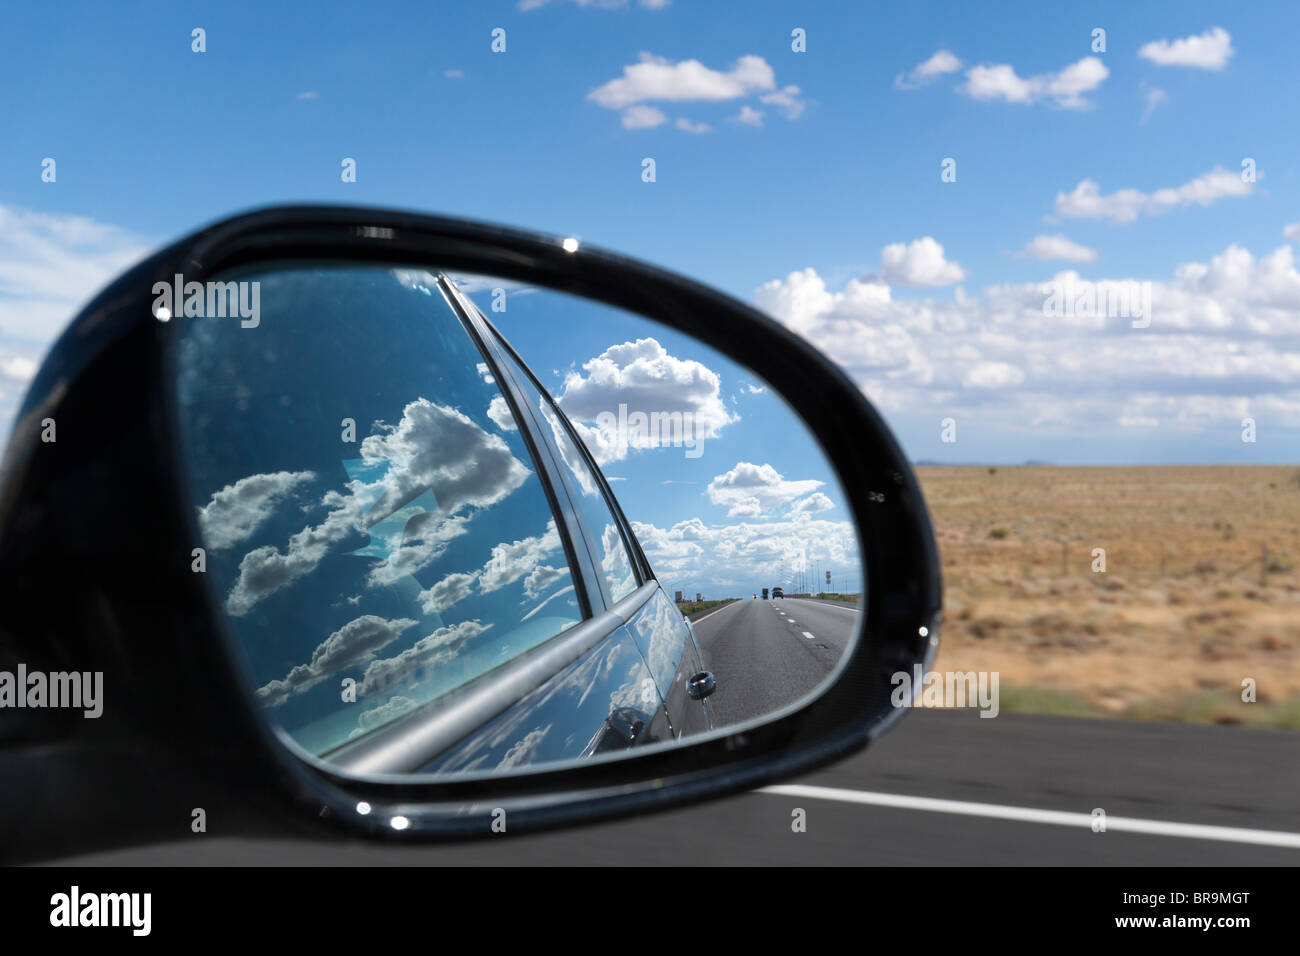 Side view mirror showing cars on the road and clouds reflecting on side of car - suggests moving on from the past - Stock Image